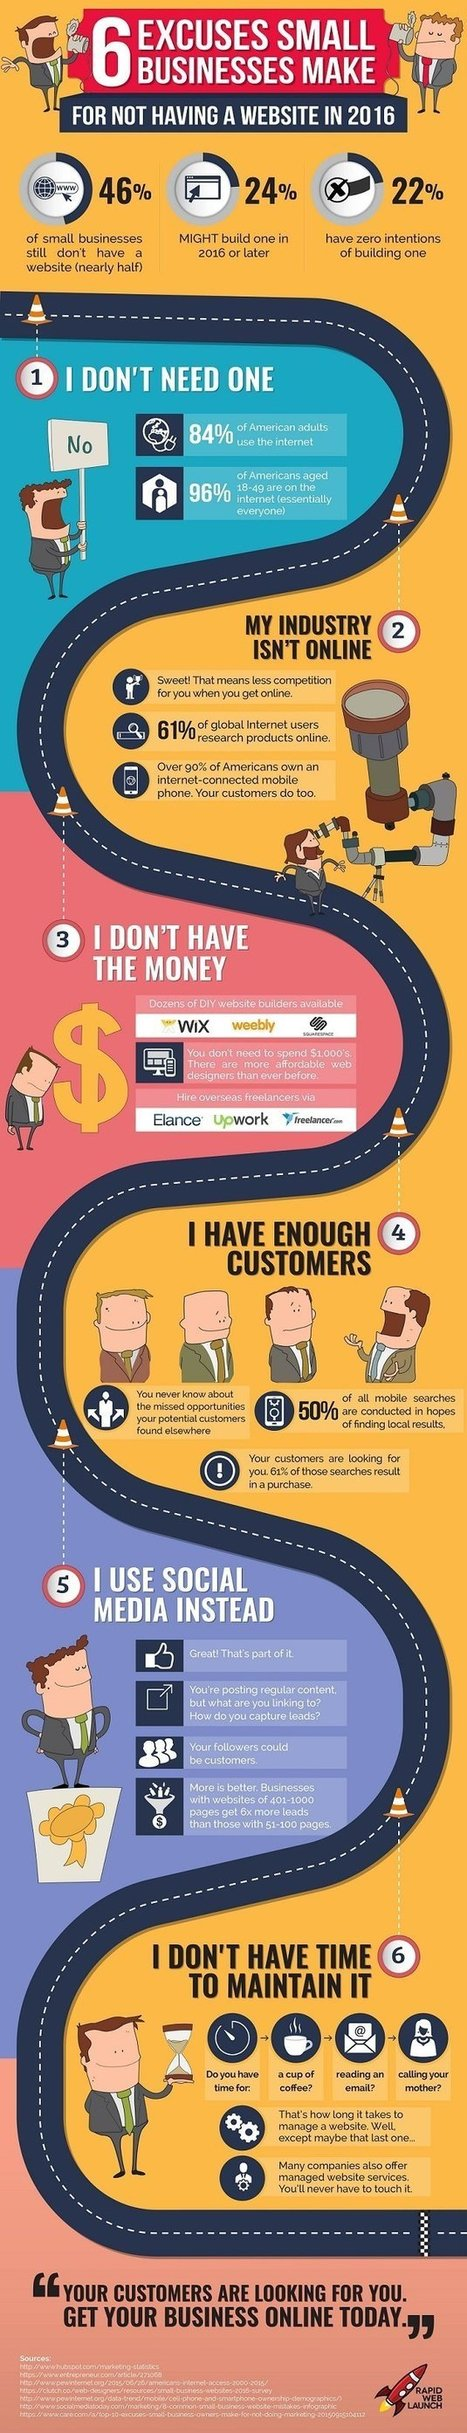 Six Excuses Small Businesses Make for Not Having a Website #Infographic | Communication pour TPE - PME | Scoop.it